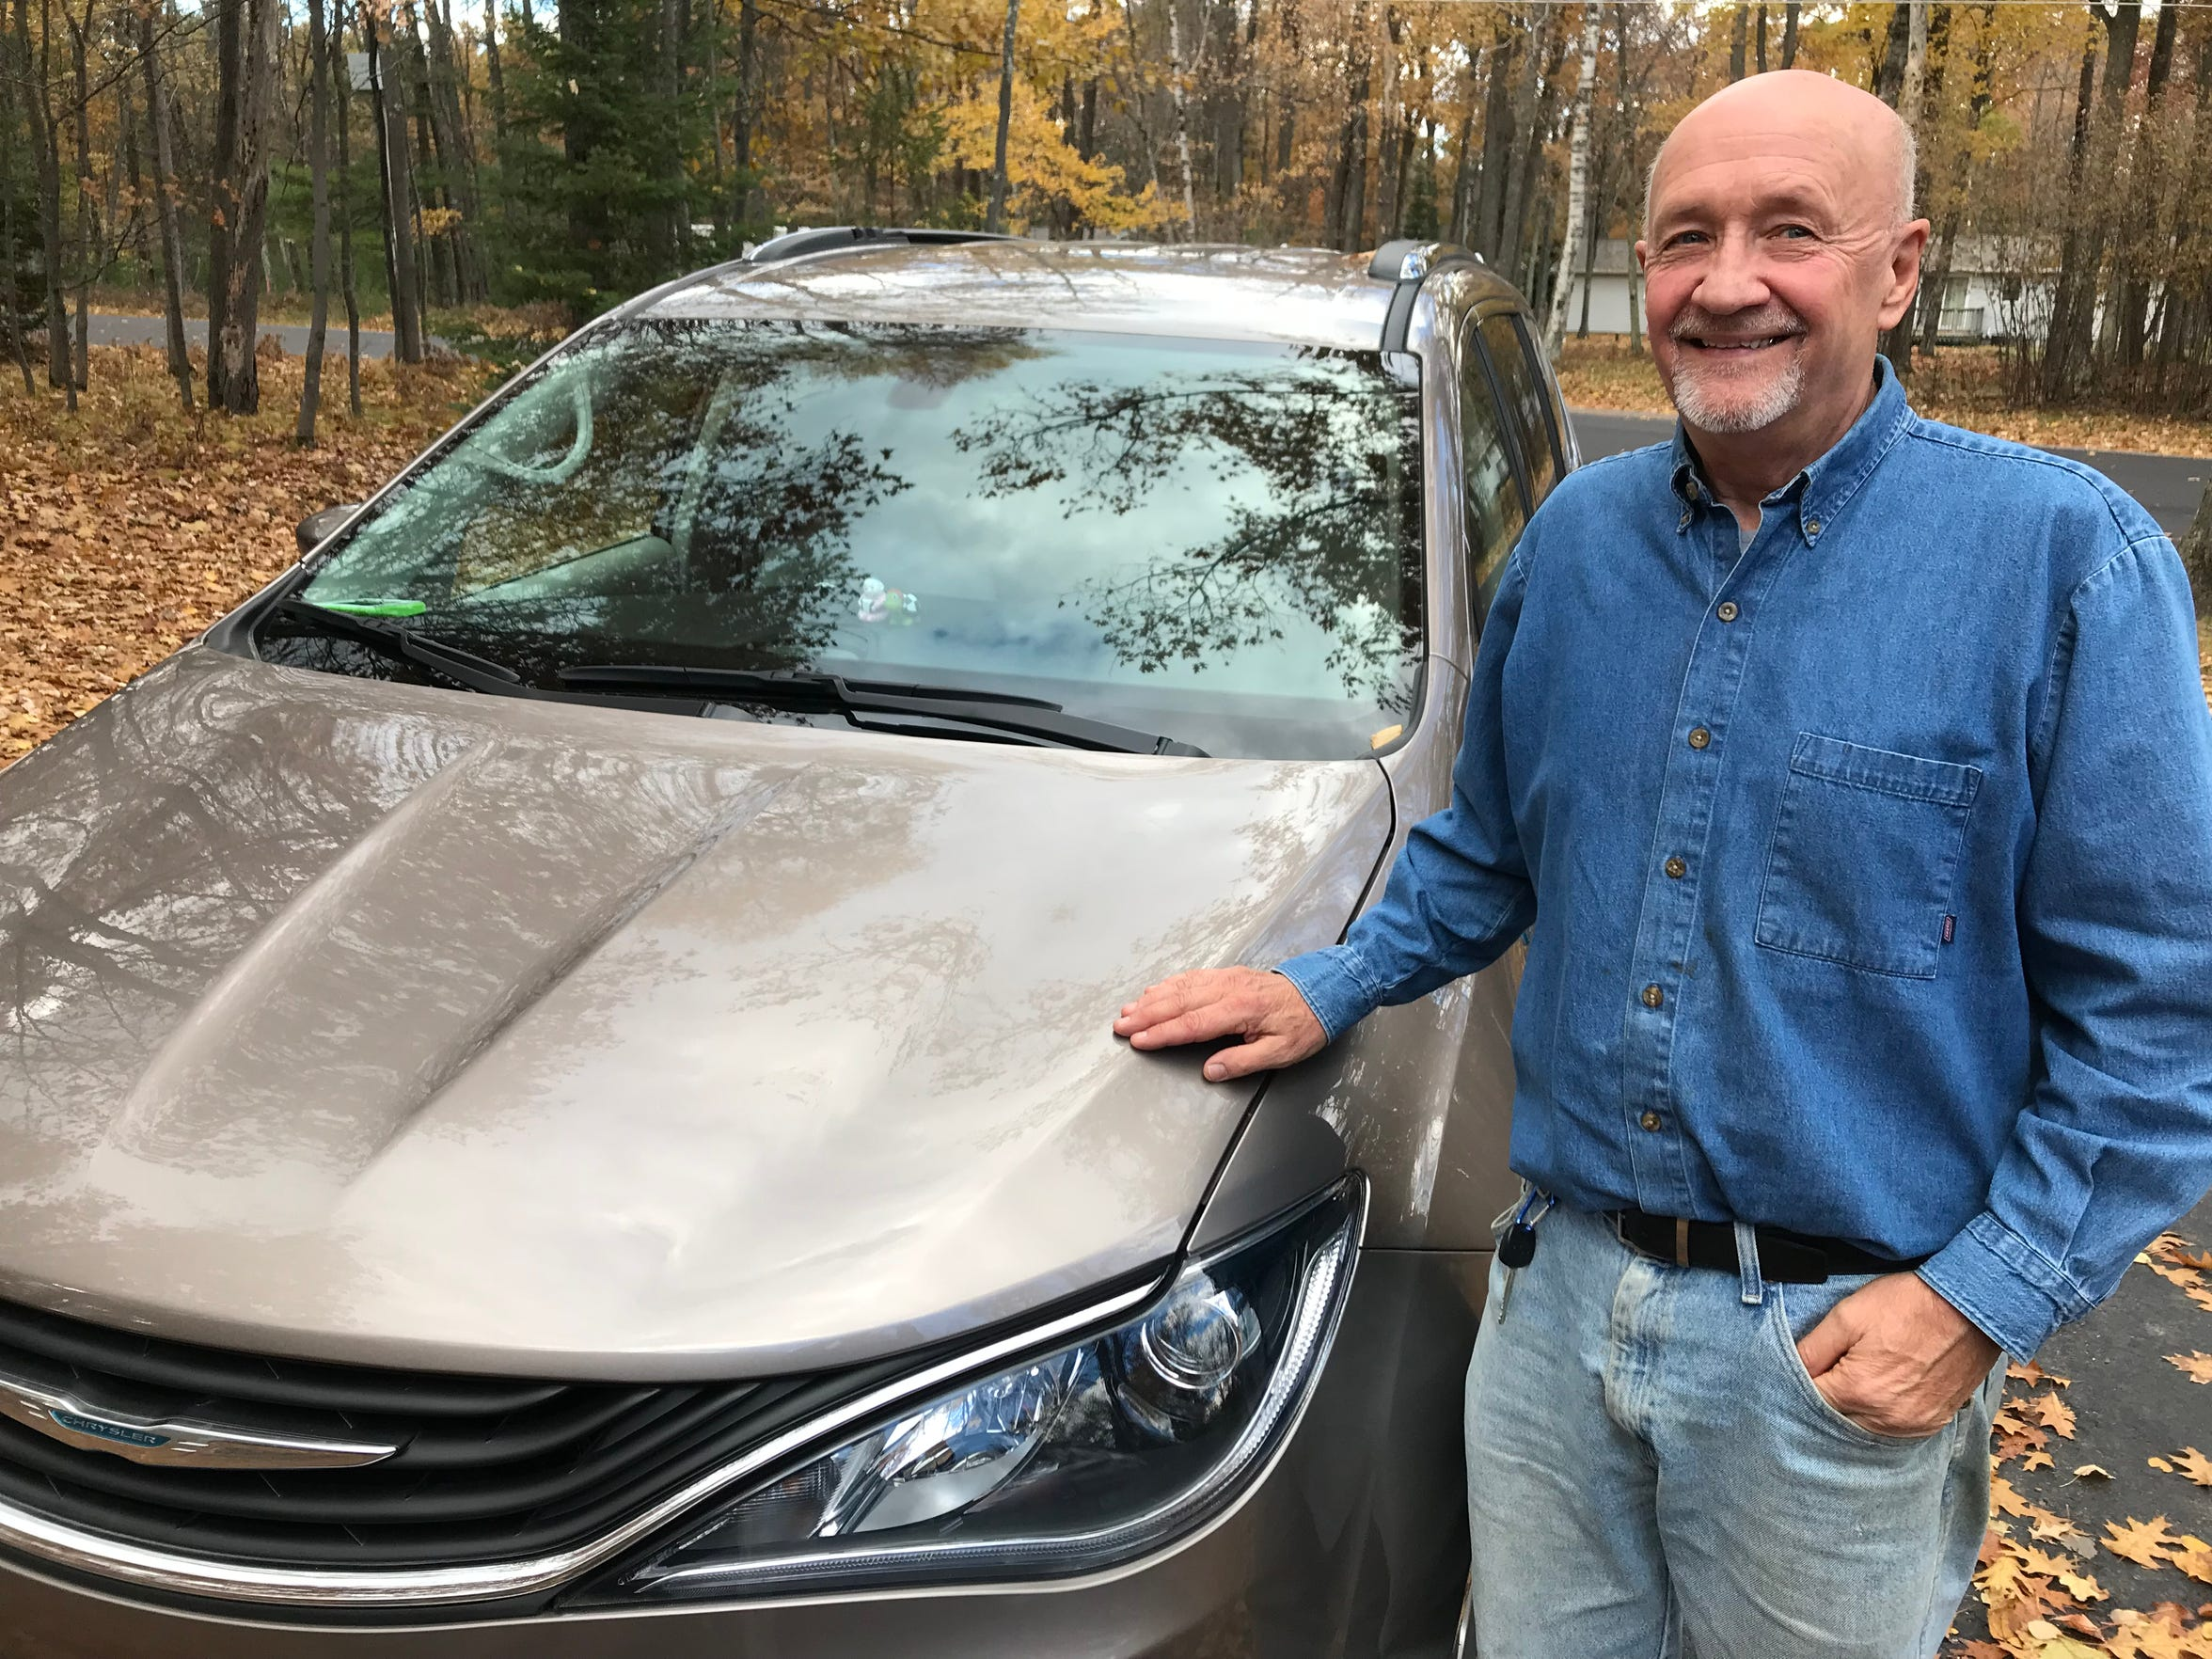 """I never win anything,"" said Randy Wendt, Minocqua. But he won, and sold, the 1948 Plymouth, which allowed him to purchase new Chrysler Pacifica hybrid minivan."